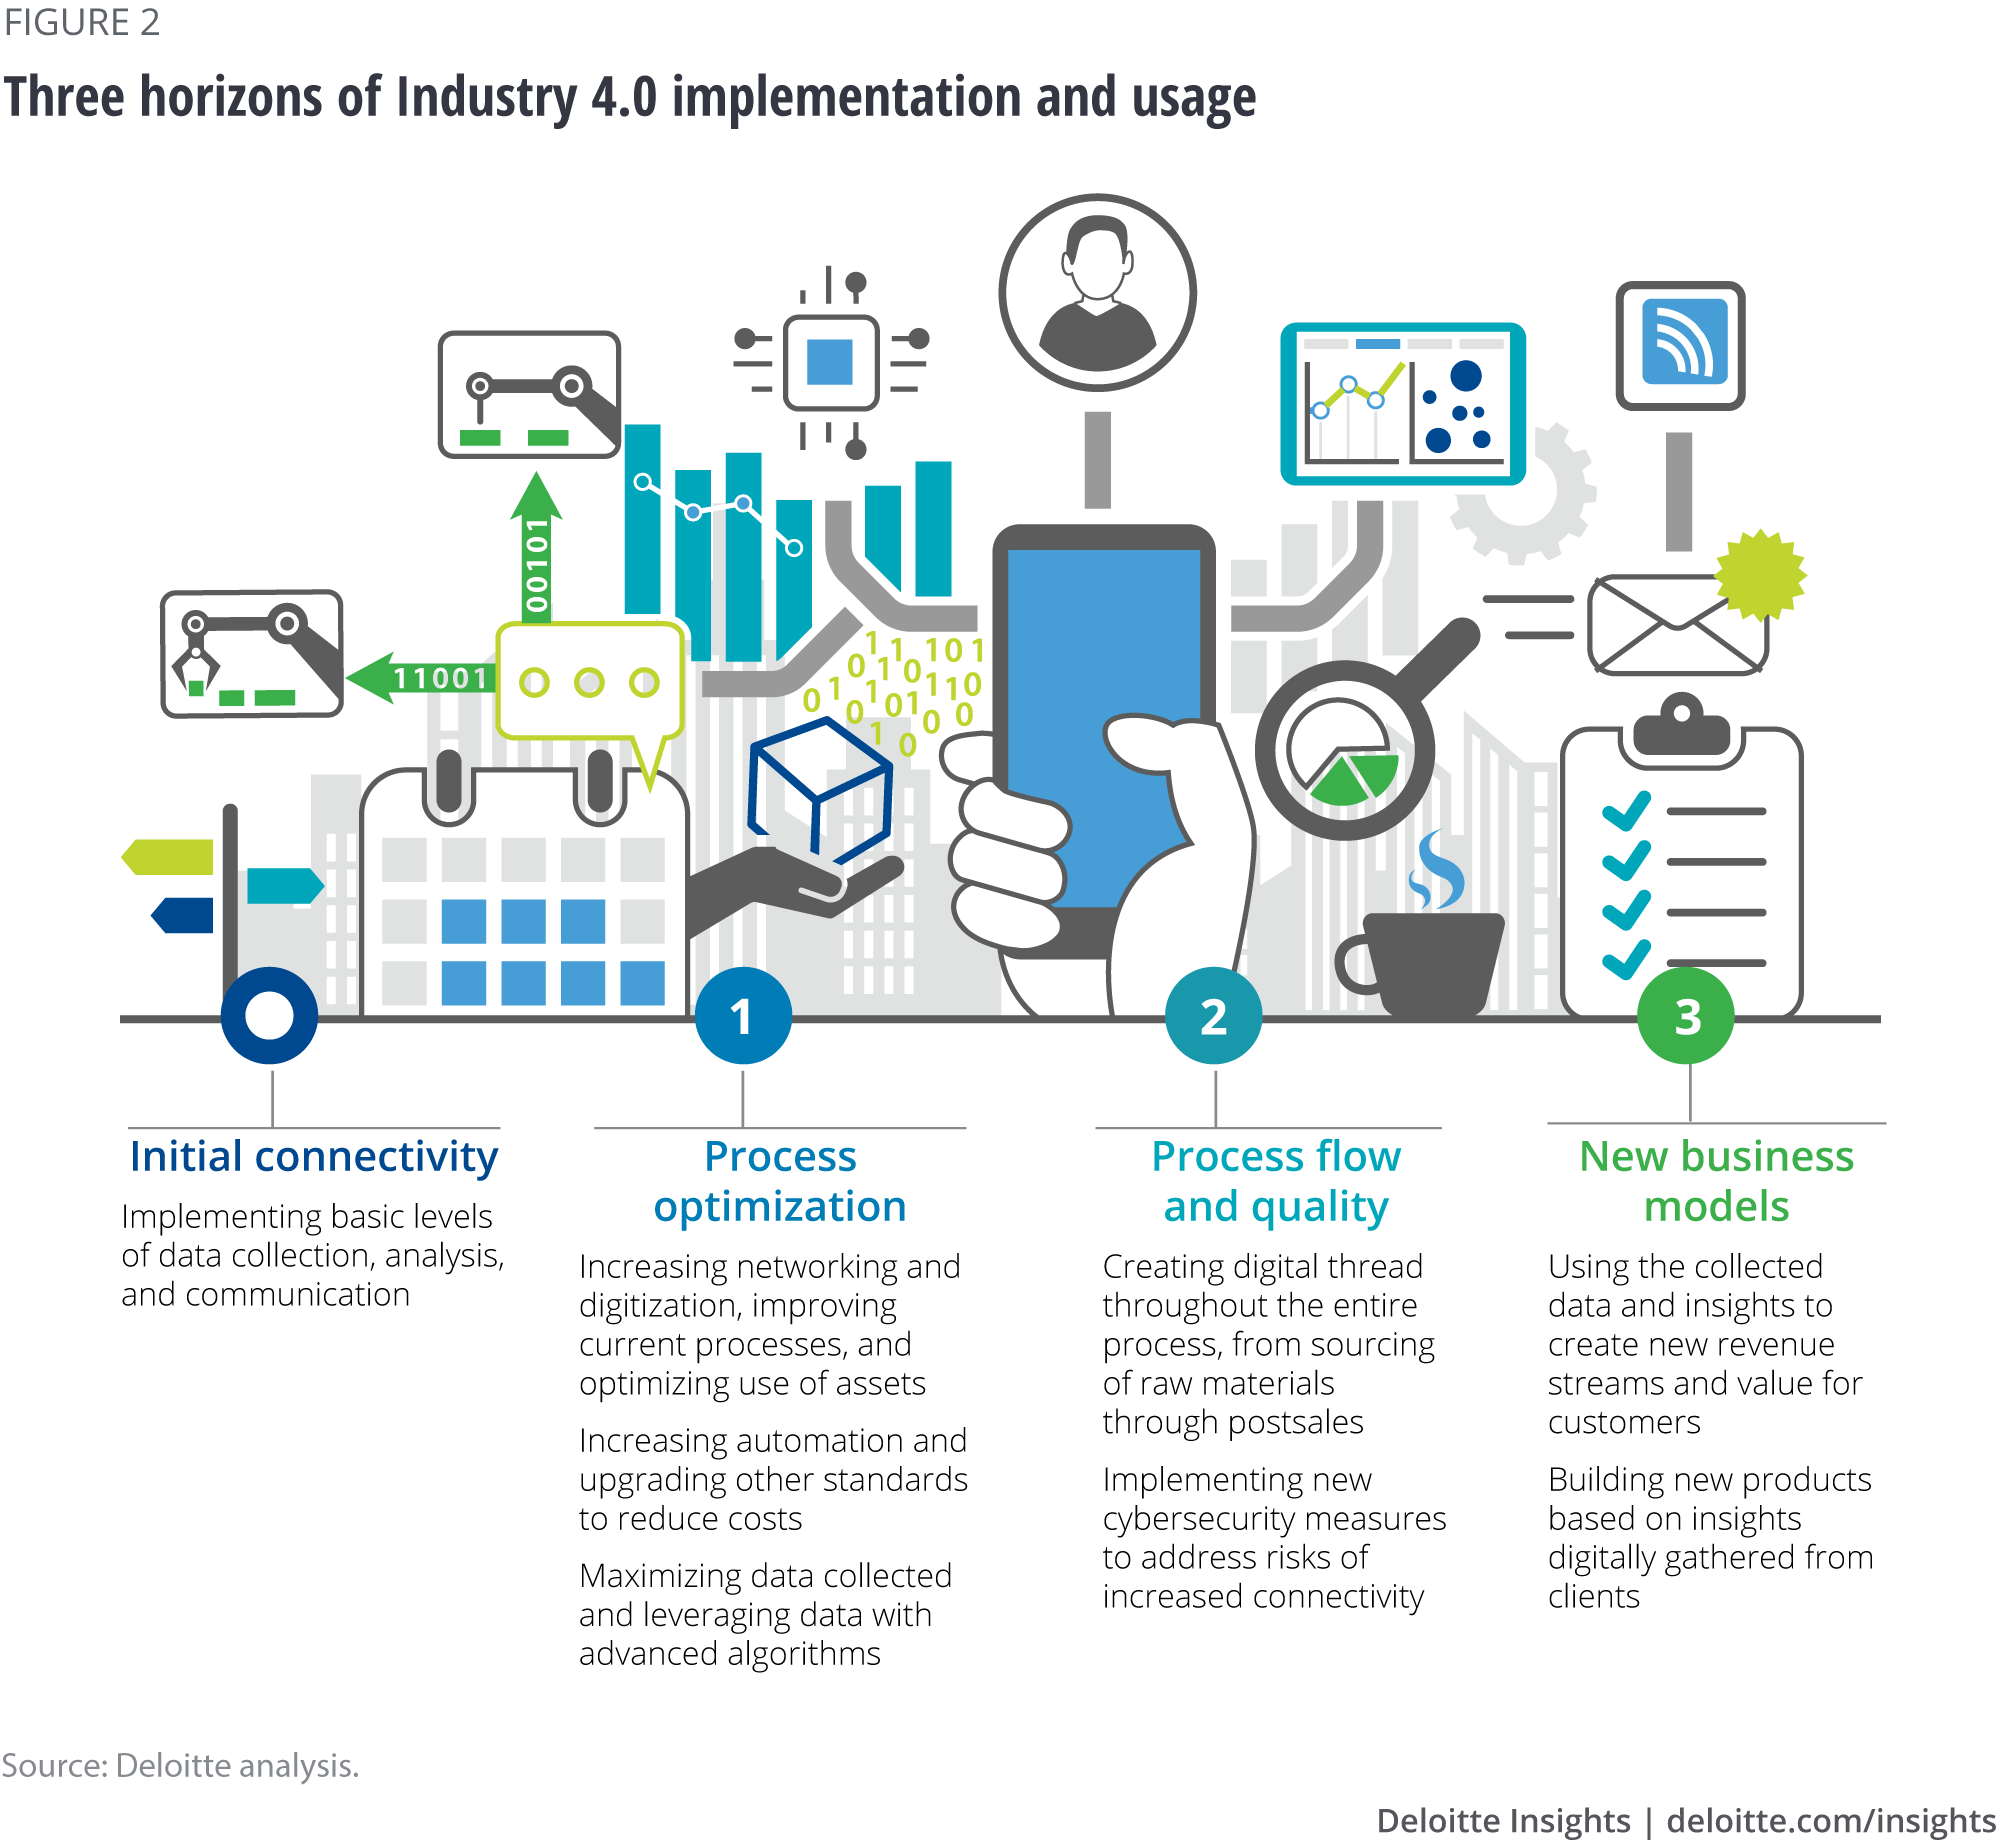 Building Industry 4 0 capabilities through collaborations with